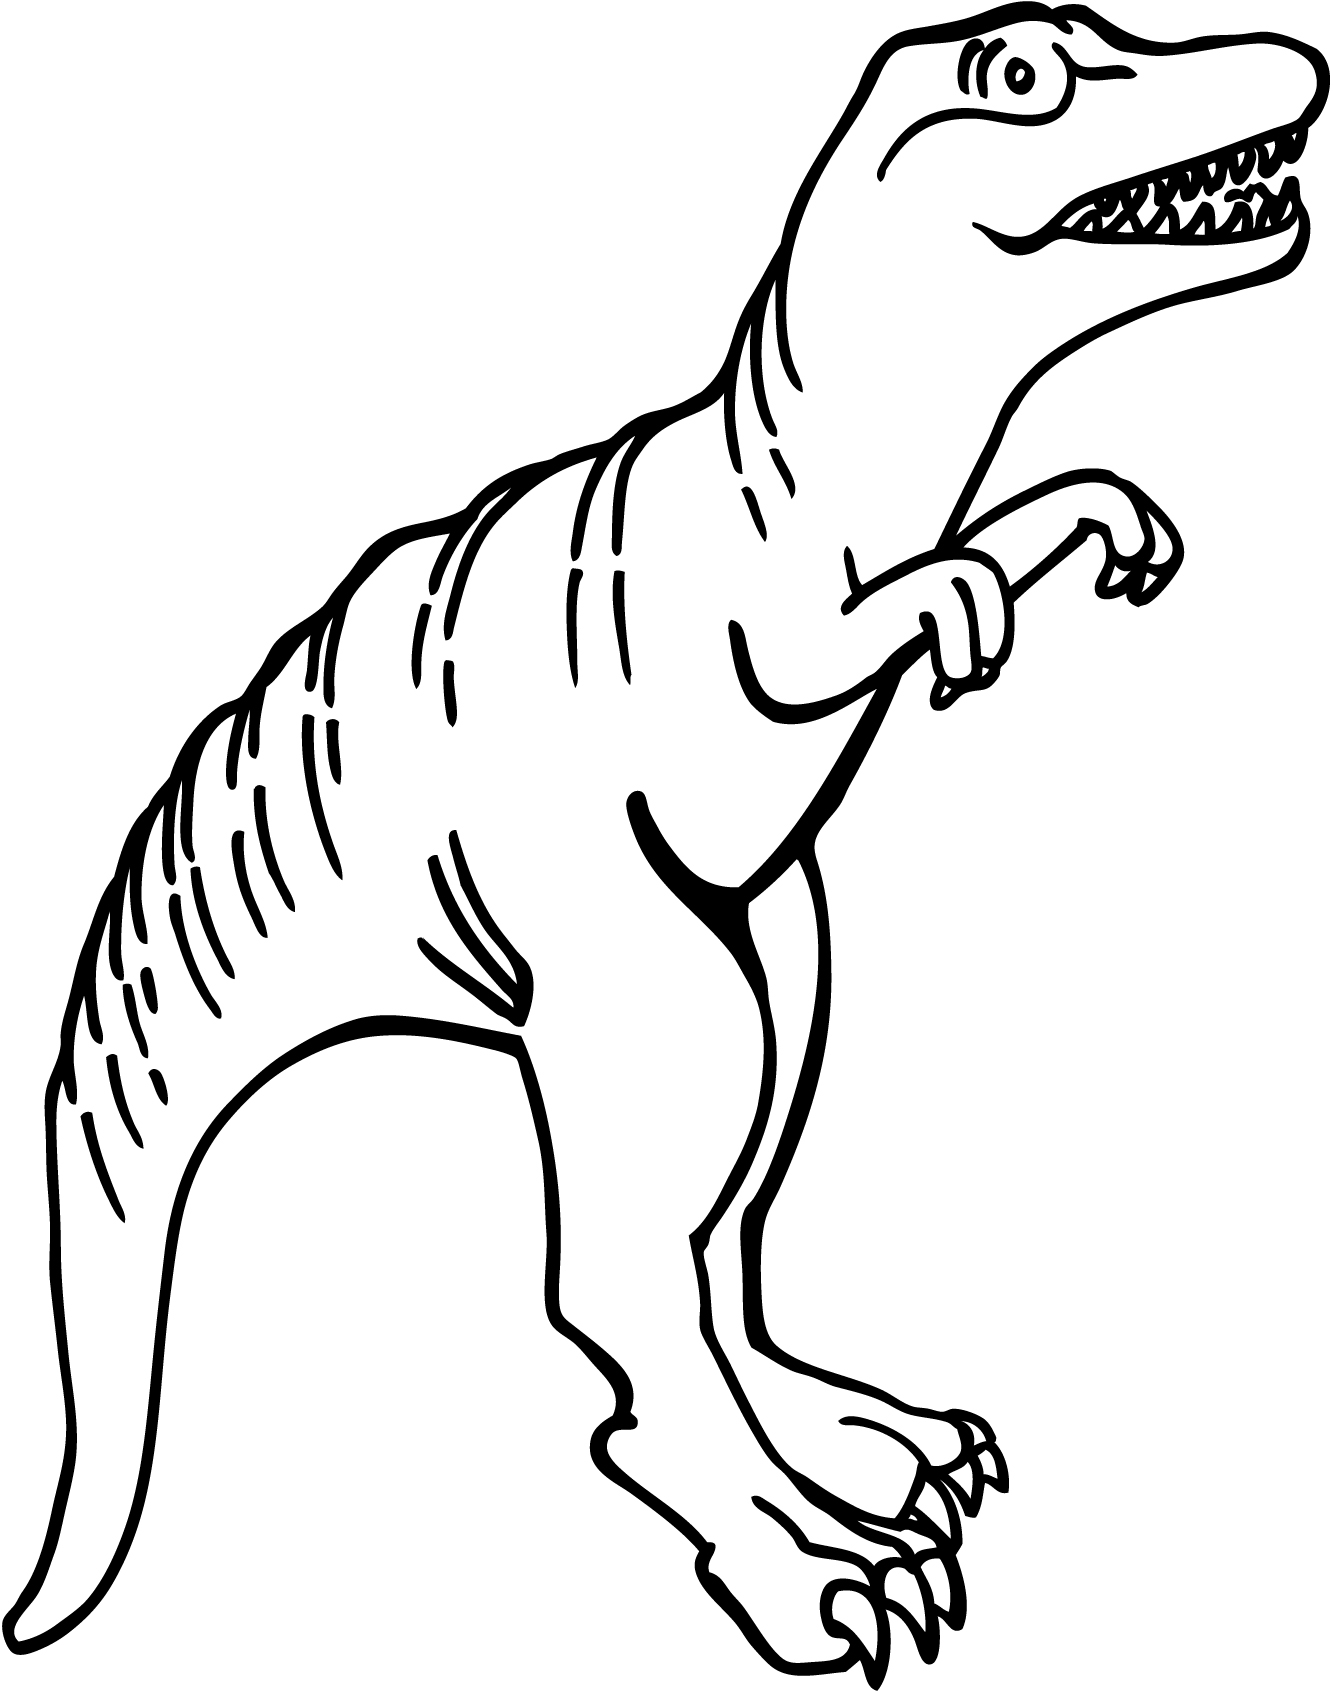 T rex clipart book black and white svg black and white Free T-Rex Cliparts, Download Free Clip Art, Free Clip Art ... svg black and white